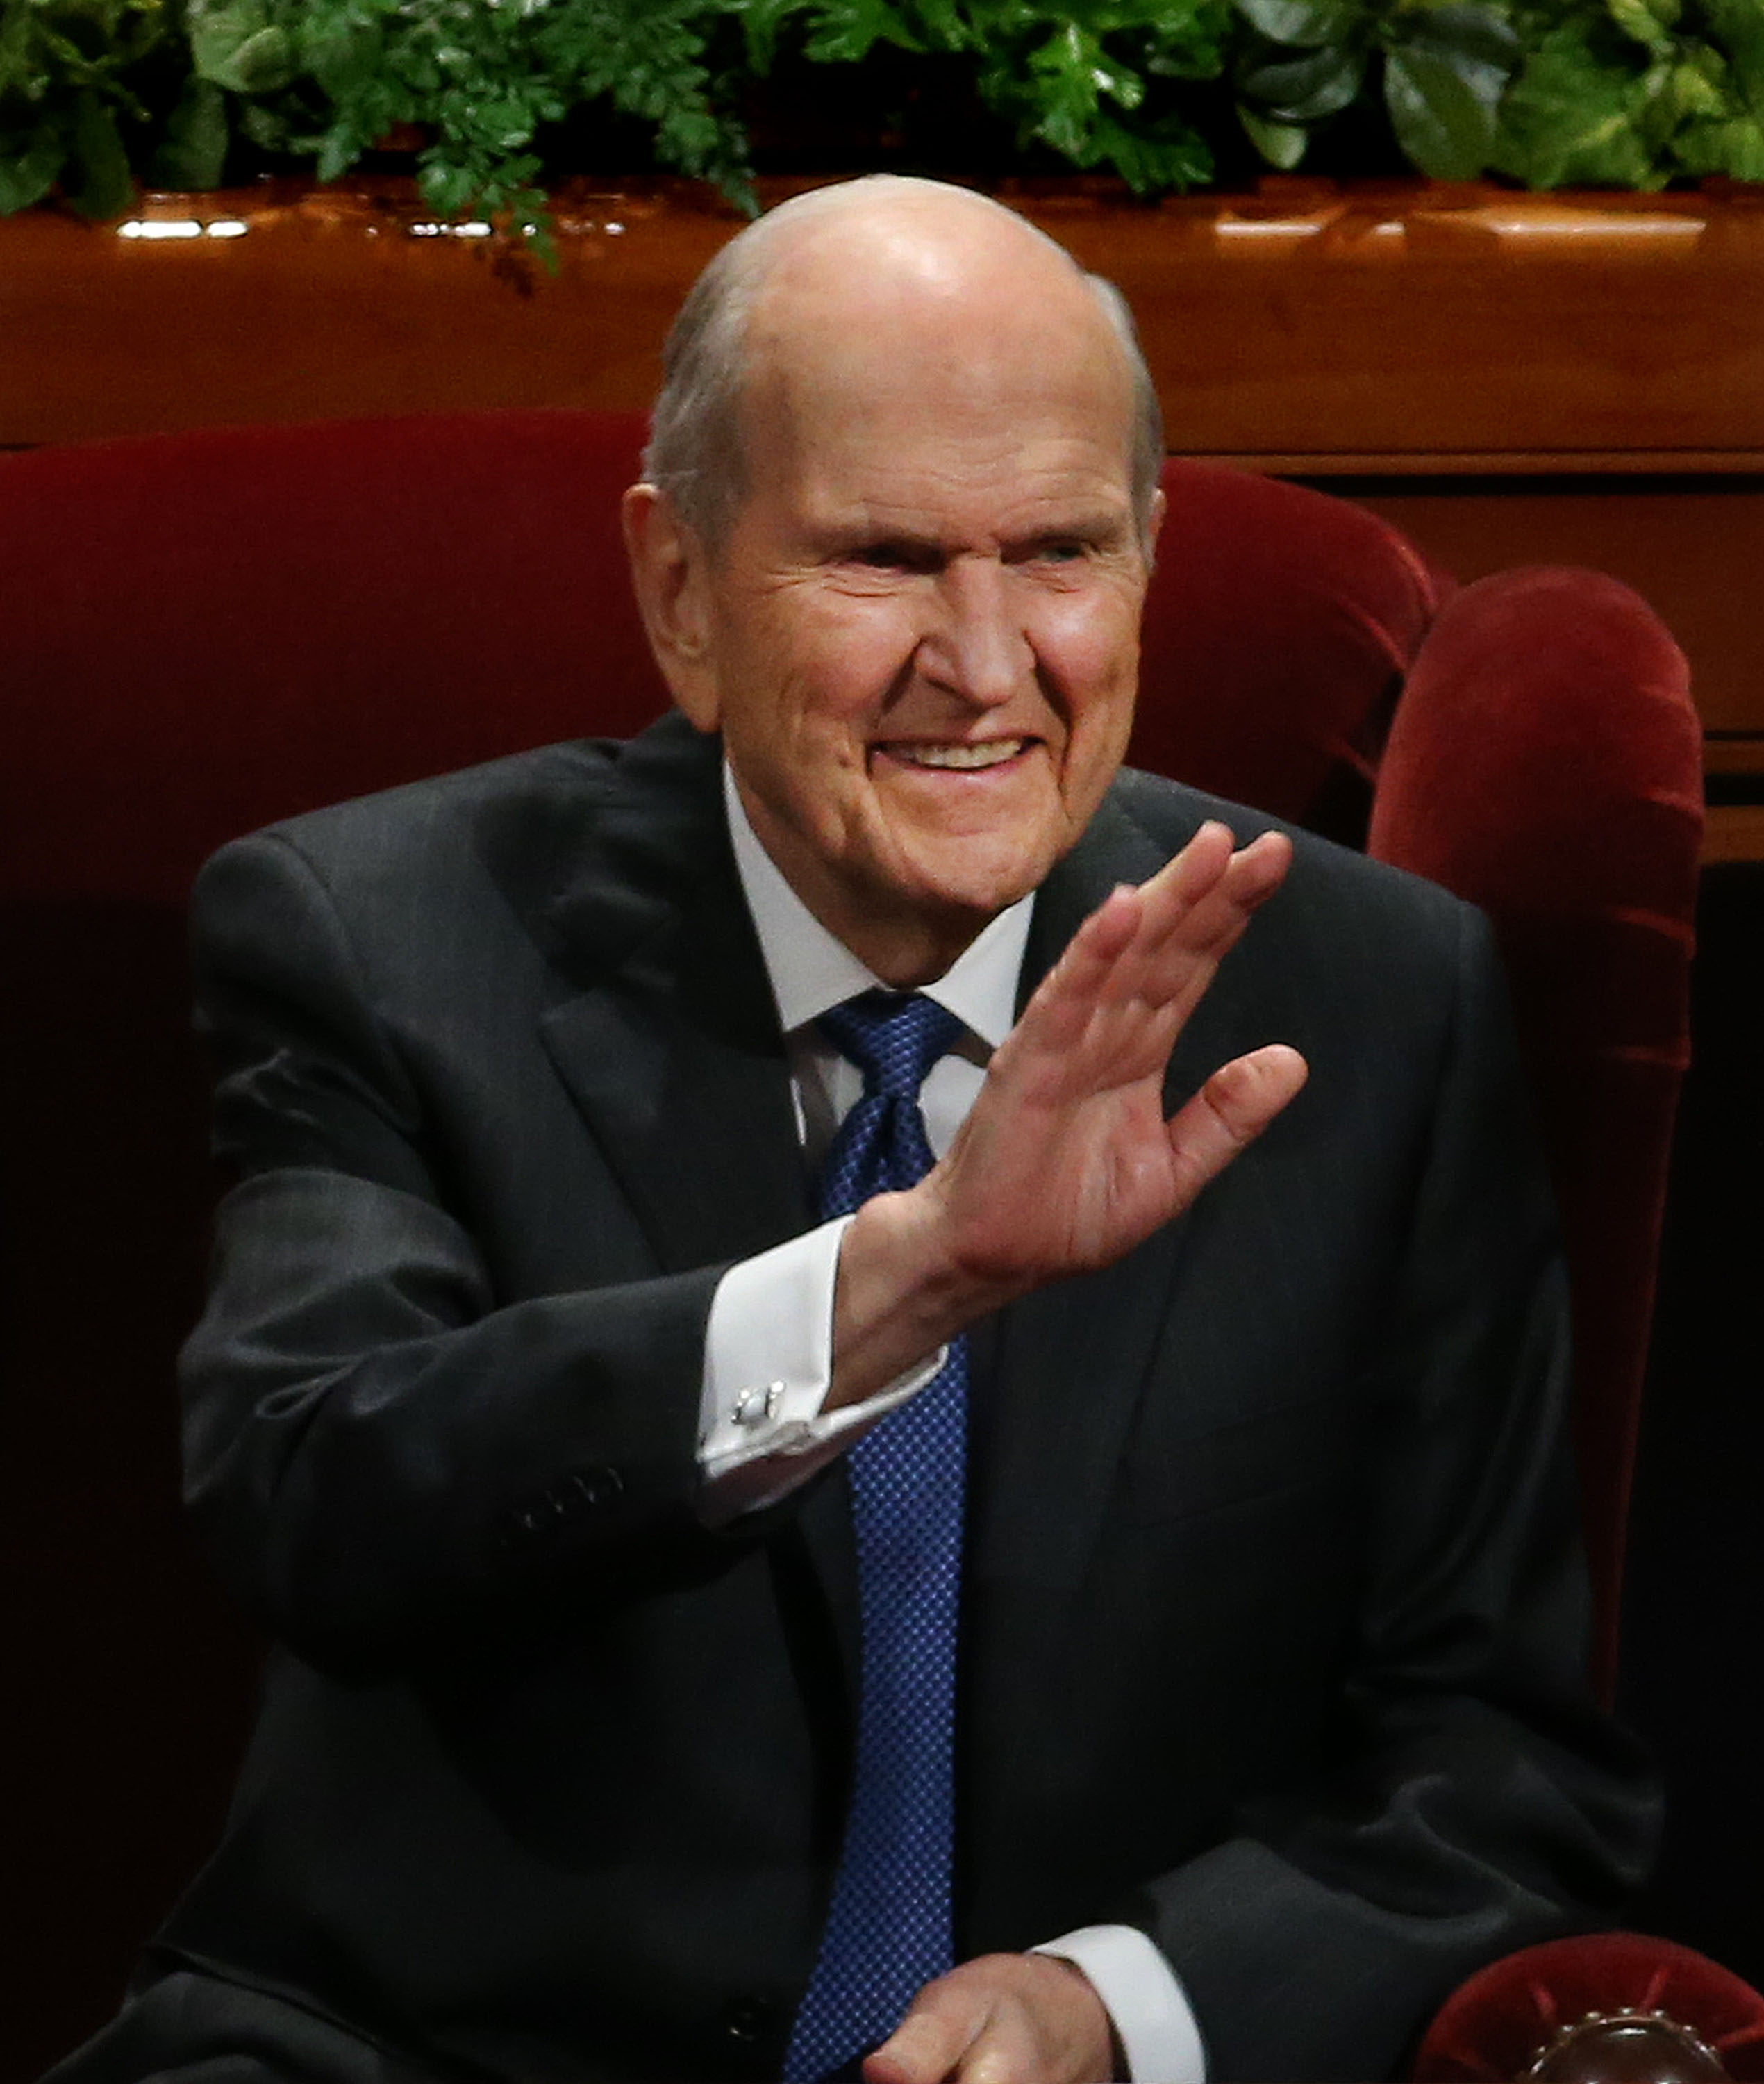 President Russell M. Nelson waves to audience members during the general women's session of the 188th Semiannual General Conference of The Church of Jesus Christ of Latter-day Saints held in the Conference Center in downtown Salt Lake City on Saturday, Oct. 6, 2018.